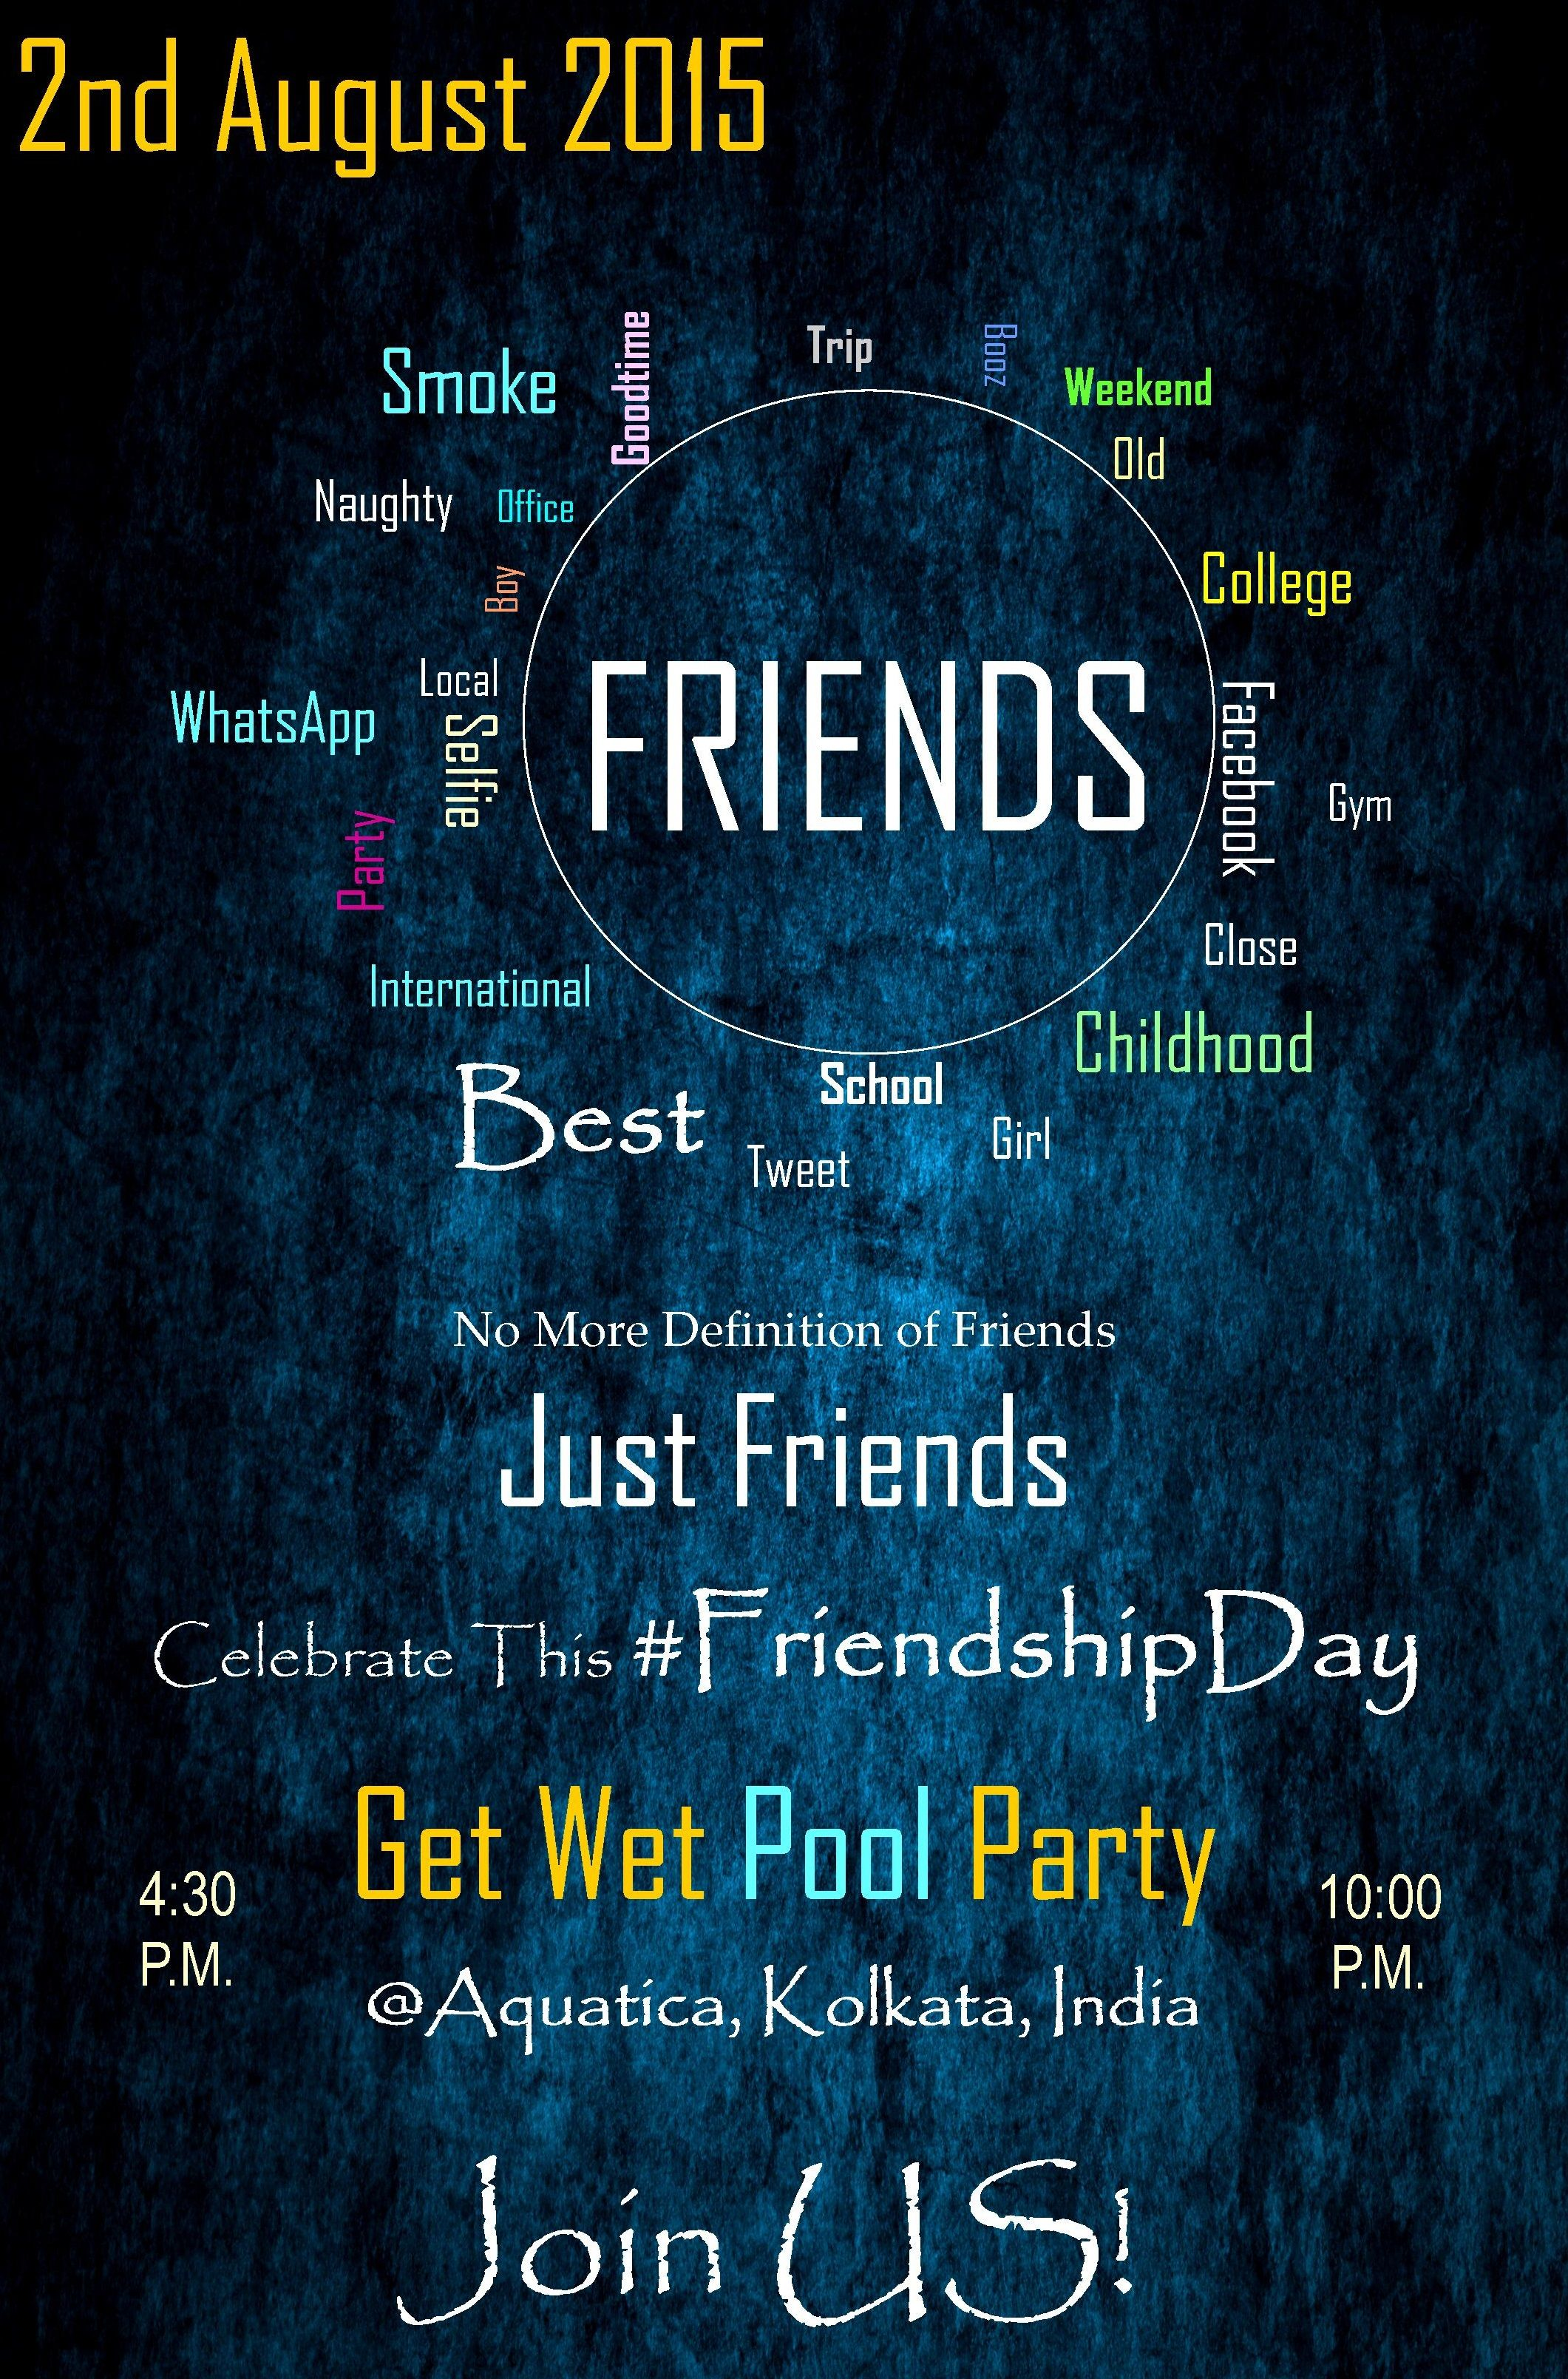 Definition of a poster design - Event Poster Design No More Definition Of Friends Justfriends Leeon International Management Present Get Wet Pool